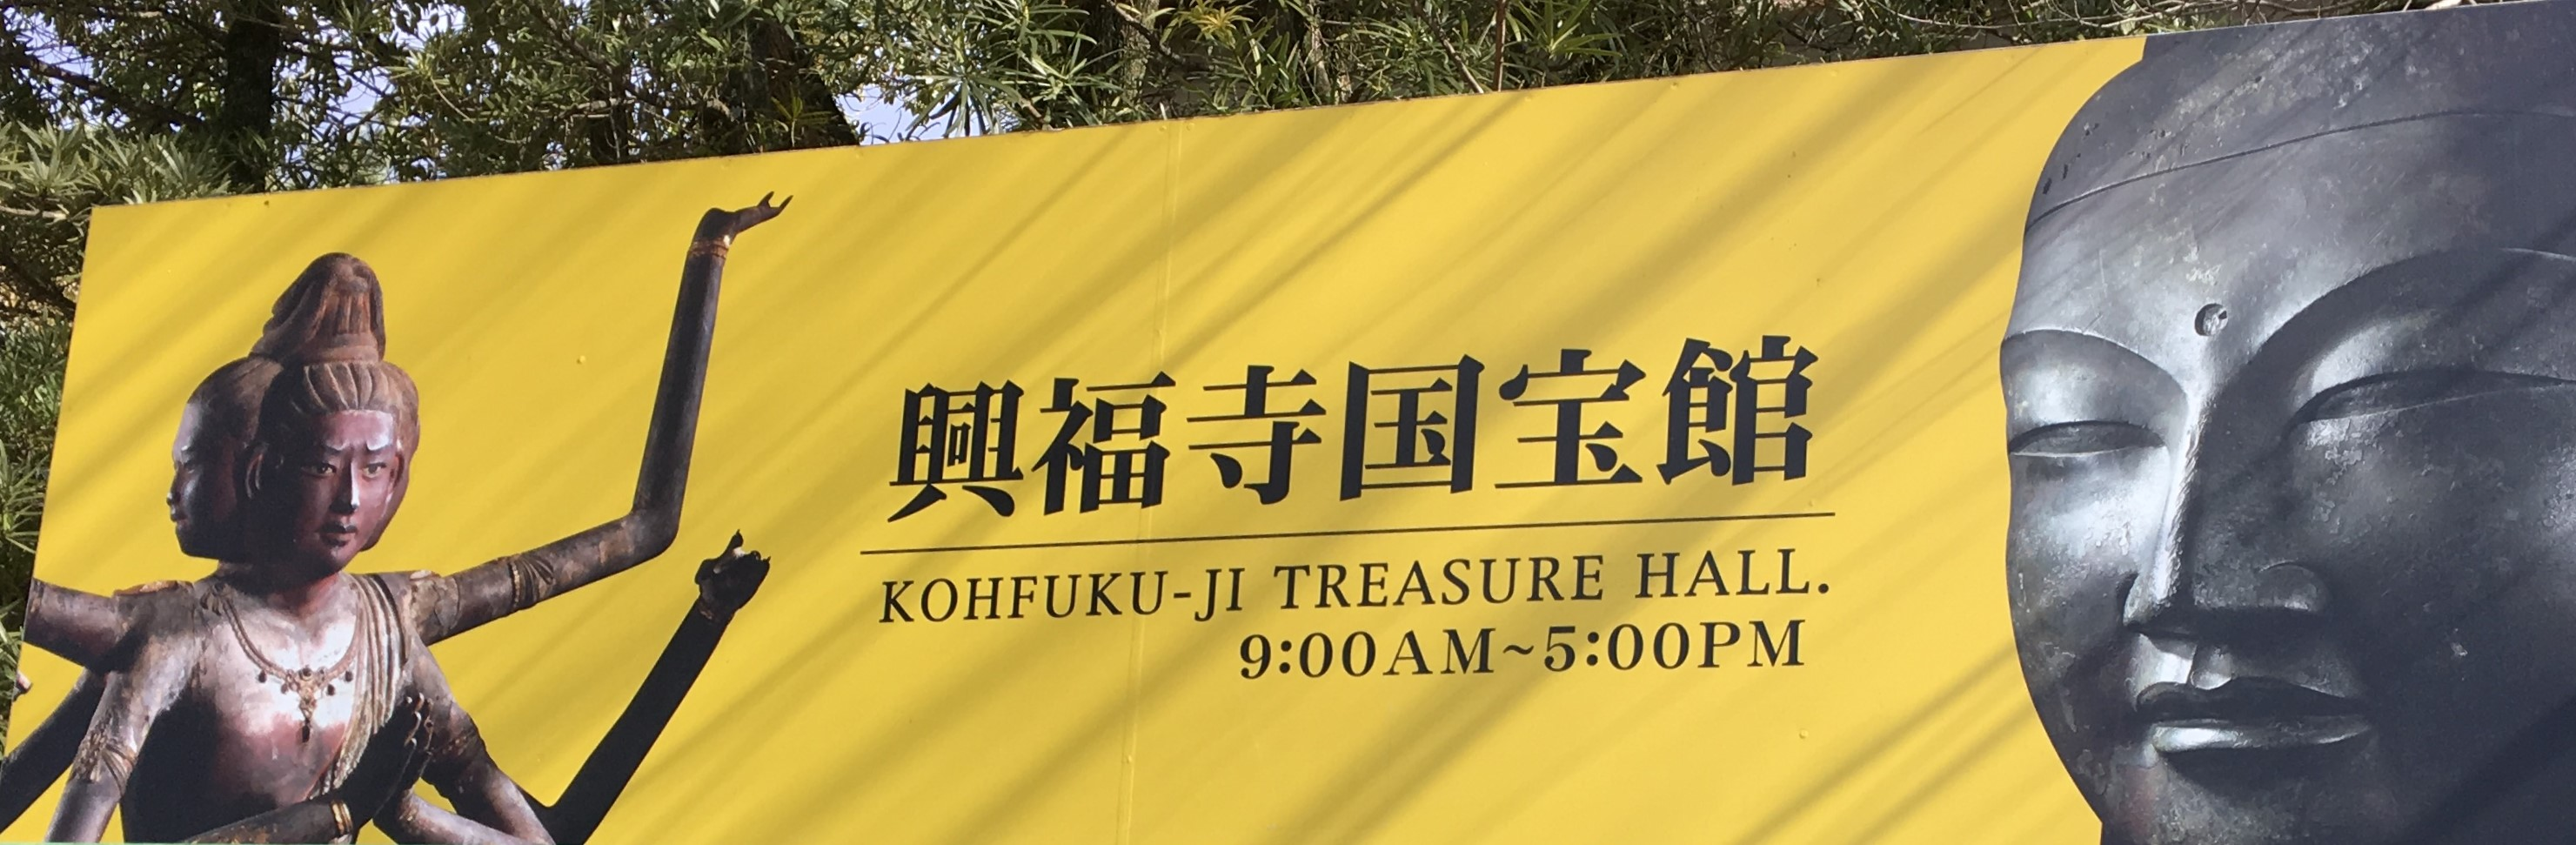 bright yellow board with the hours for kofukuji's treasure hall